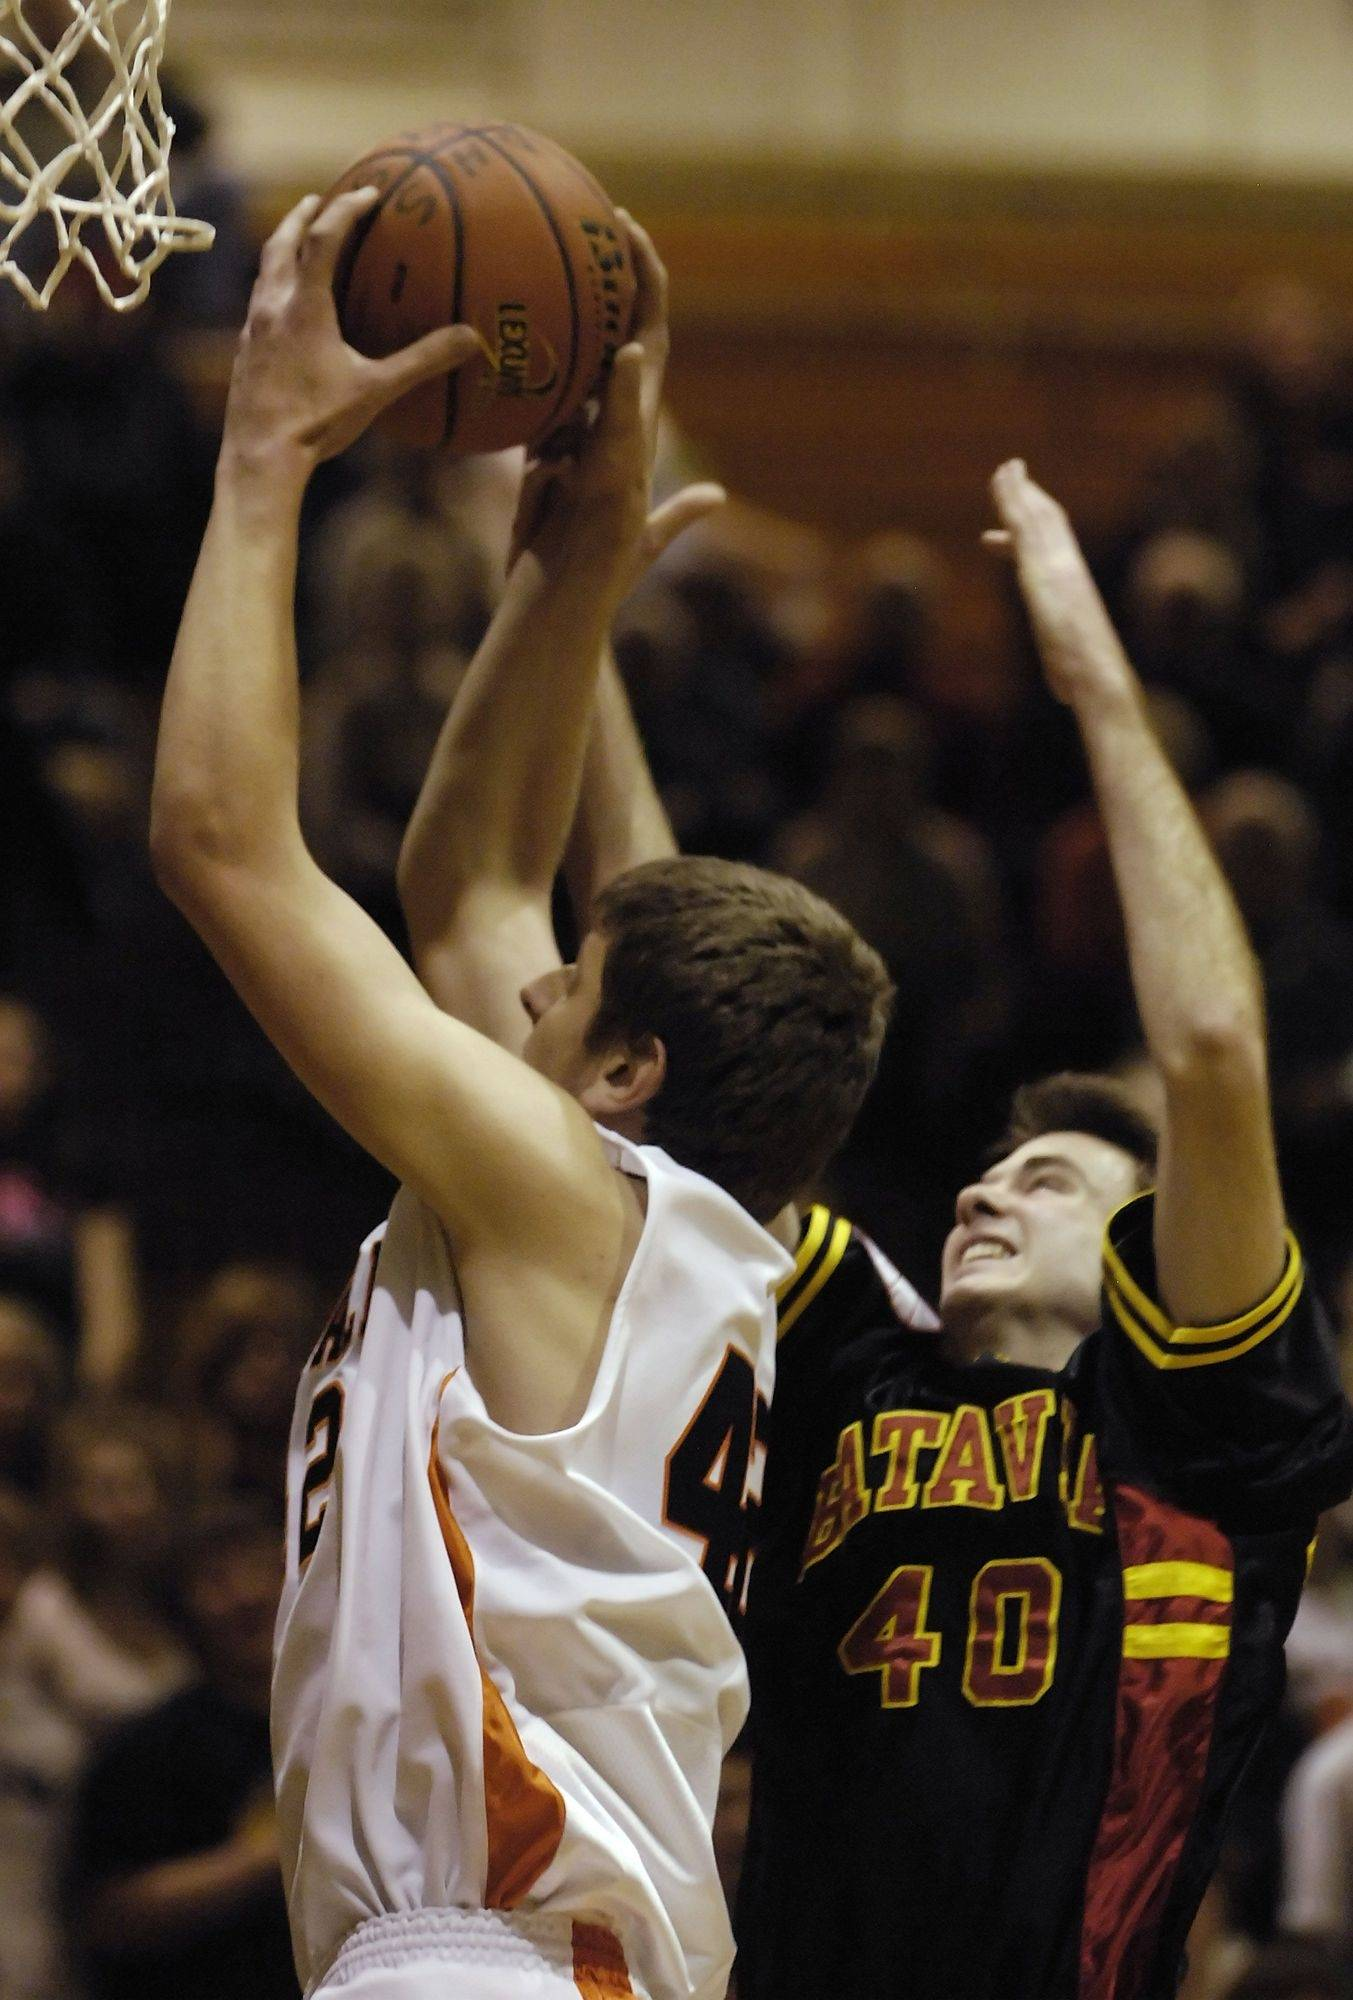 Batavia's Levi Maxey battles for a rebound against DeKalb's Jordan Threloff, who pulled down a career-high 26 leading the Barbs to a 68-65 come-from-behind win in overtime Tuesday.